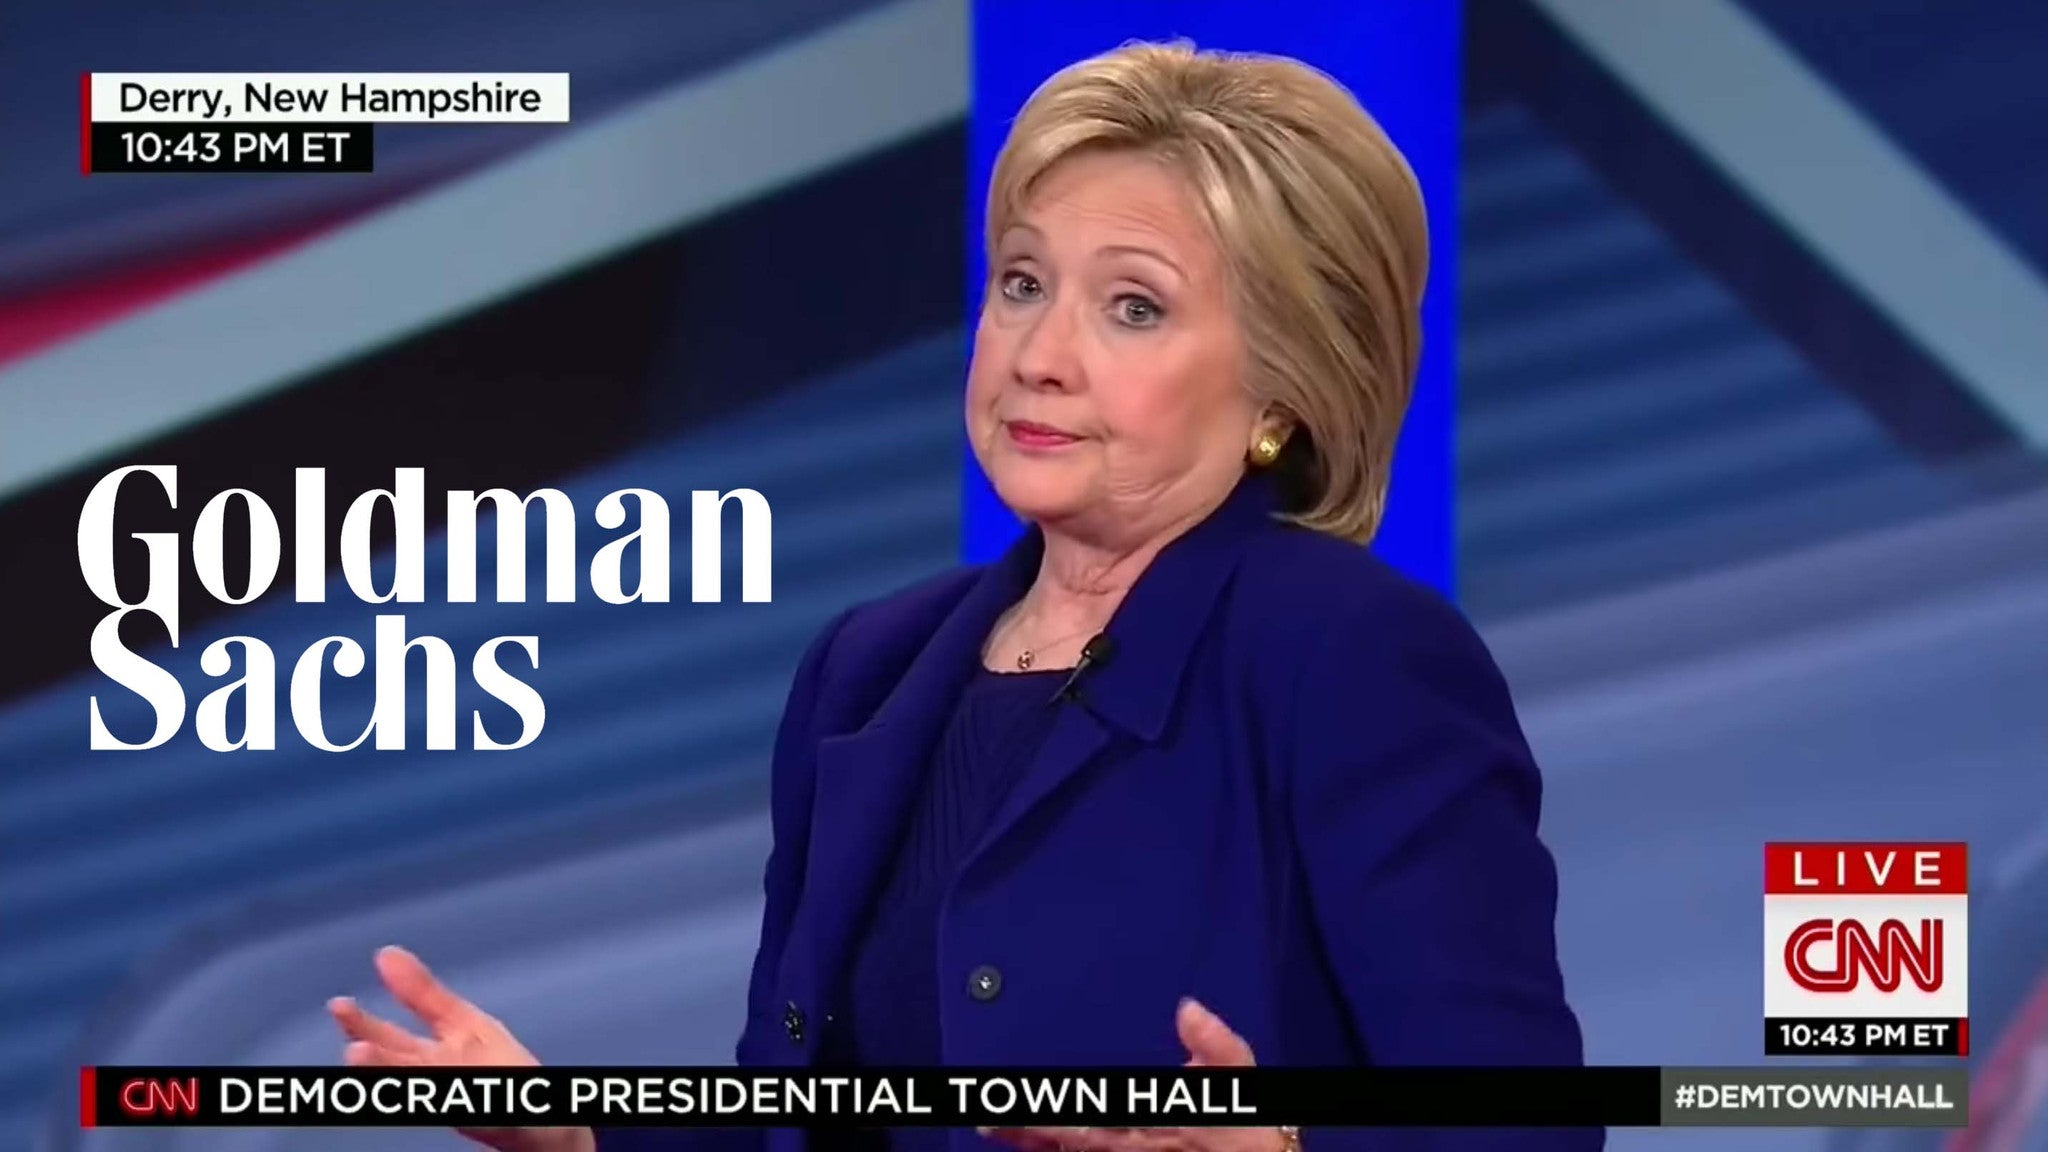 FOR SALE? Hillary Clinton Defends Taking $675,000 From Goldman Sachs